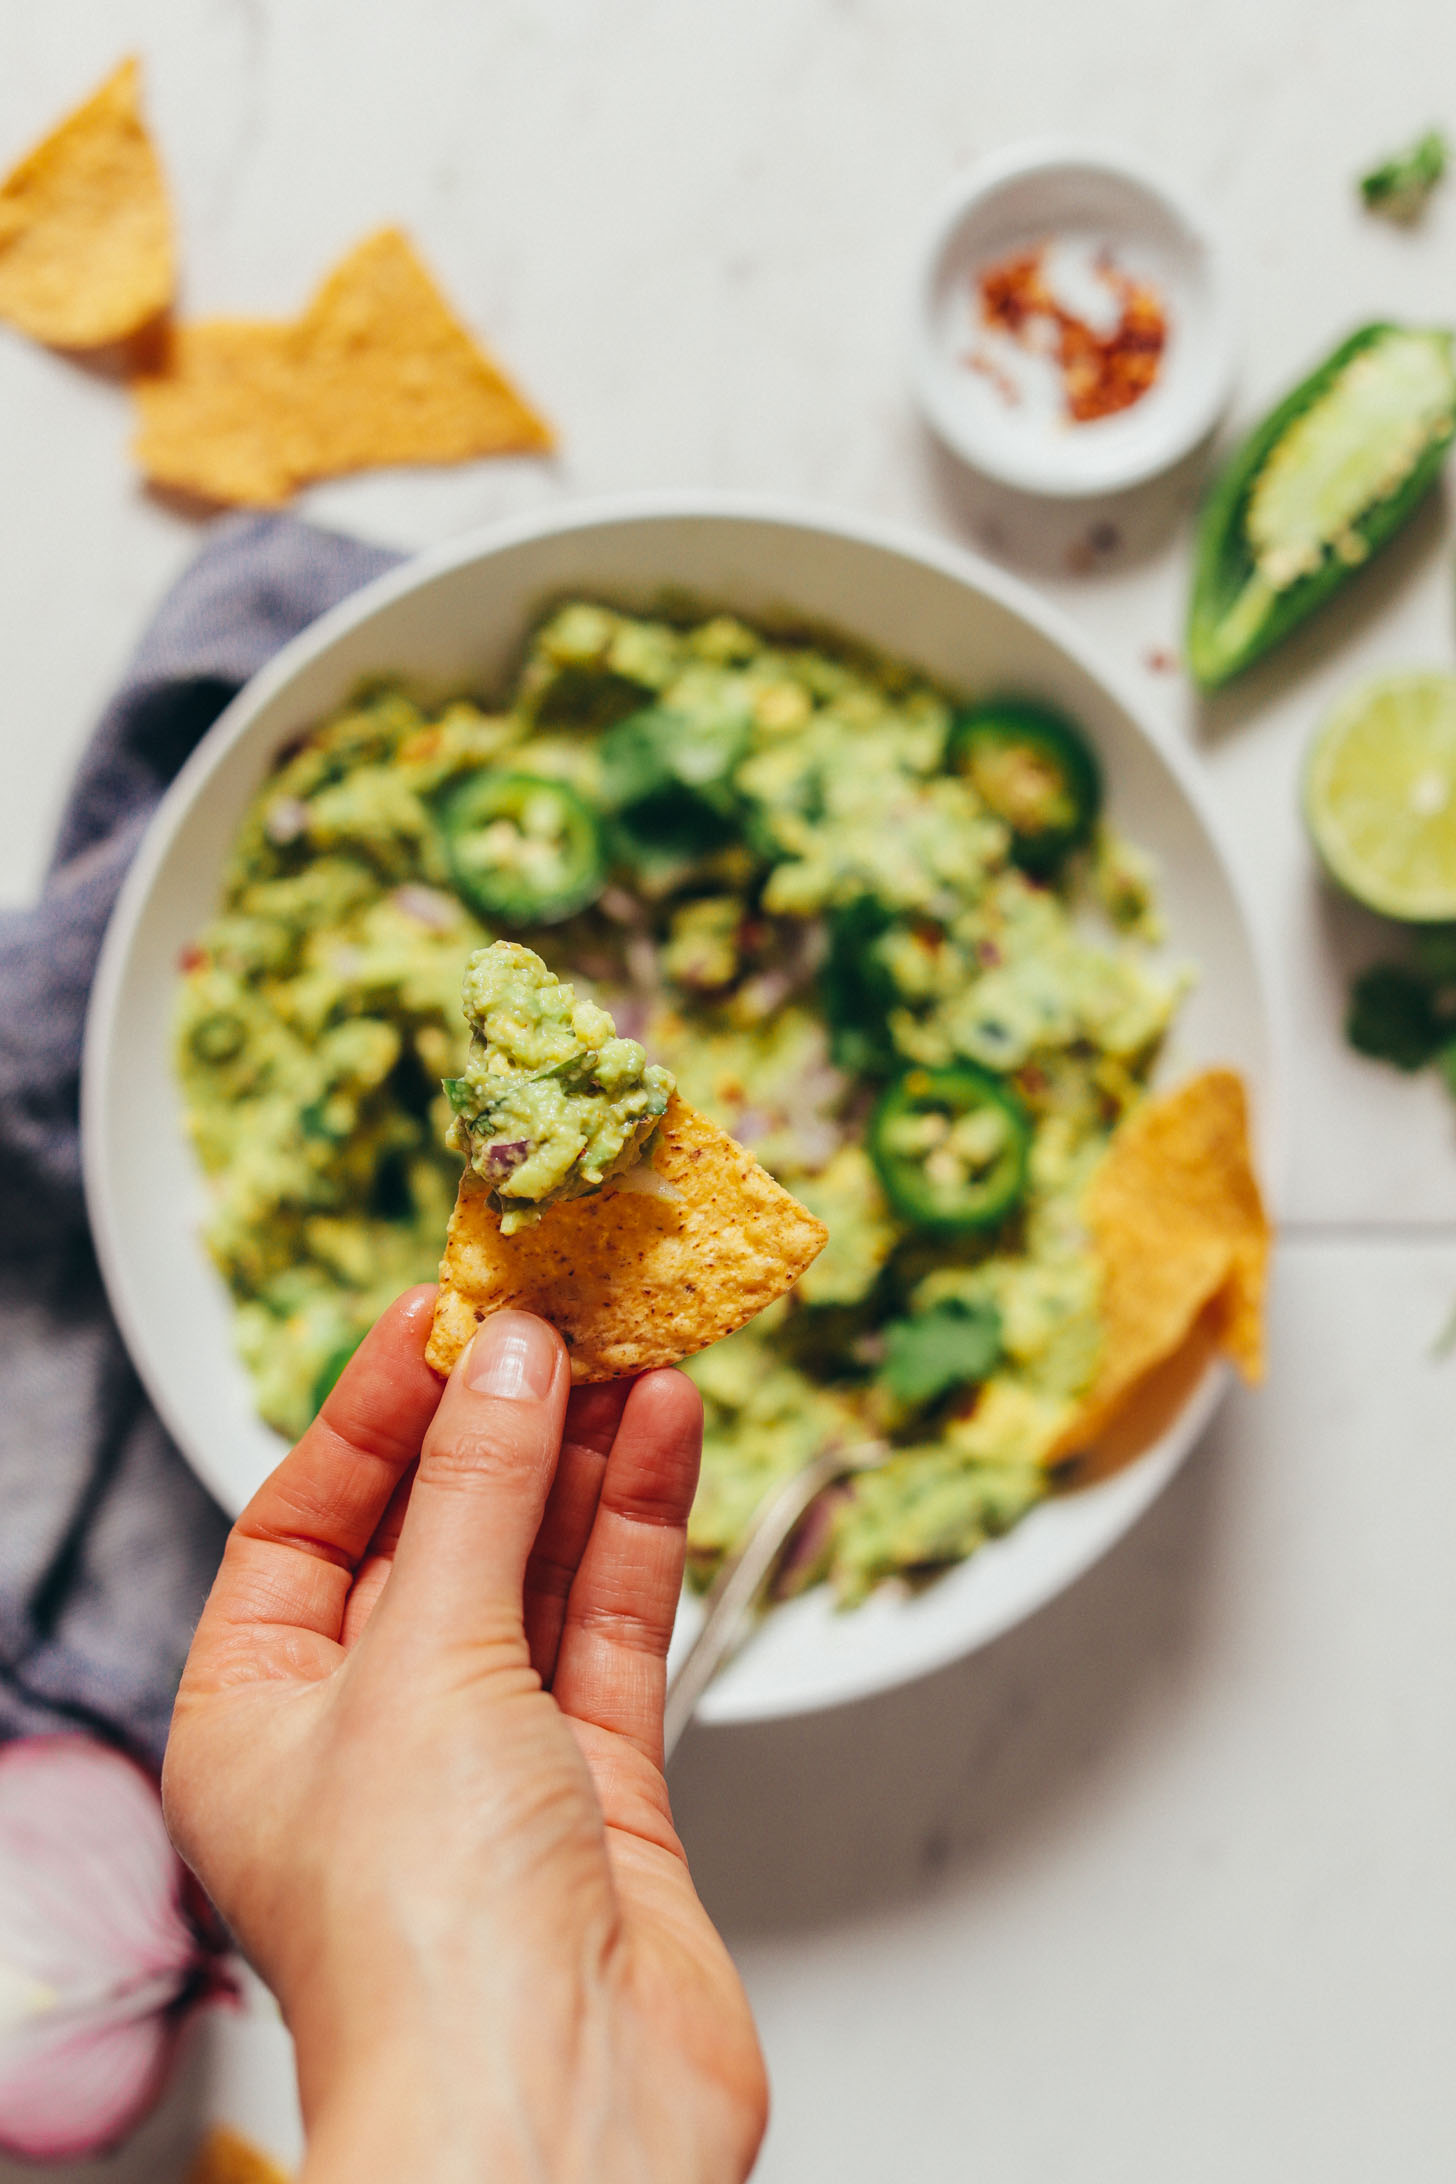 An overhead image of guacamole in a white bowl in the background with a hand holding a chip with some guacamole in focus overhead